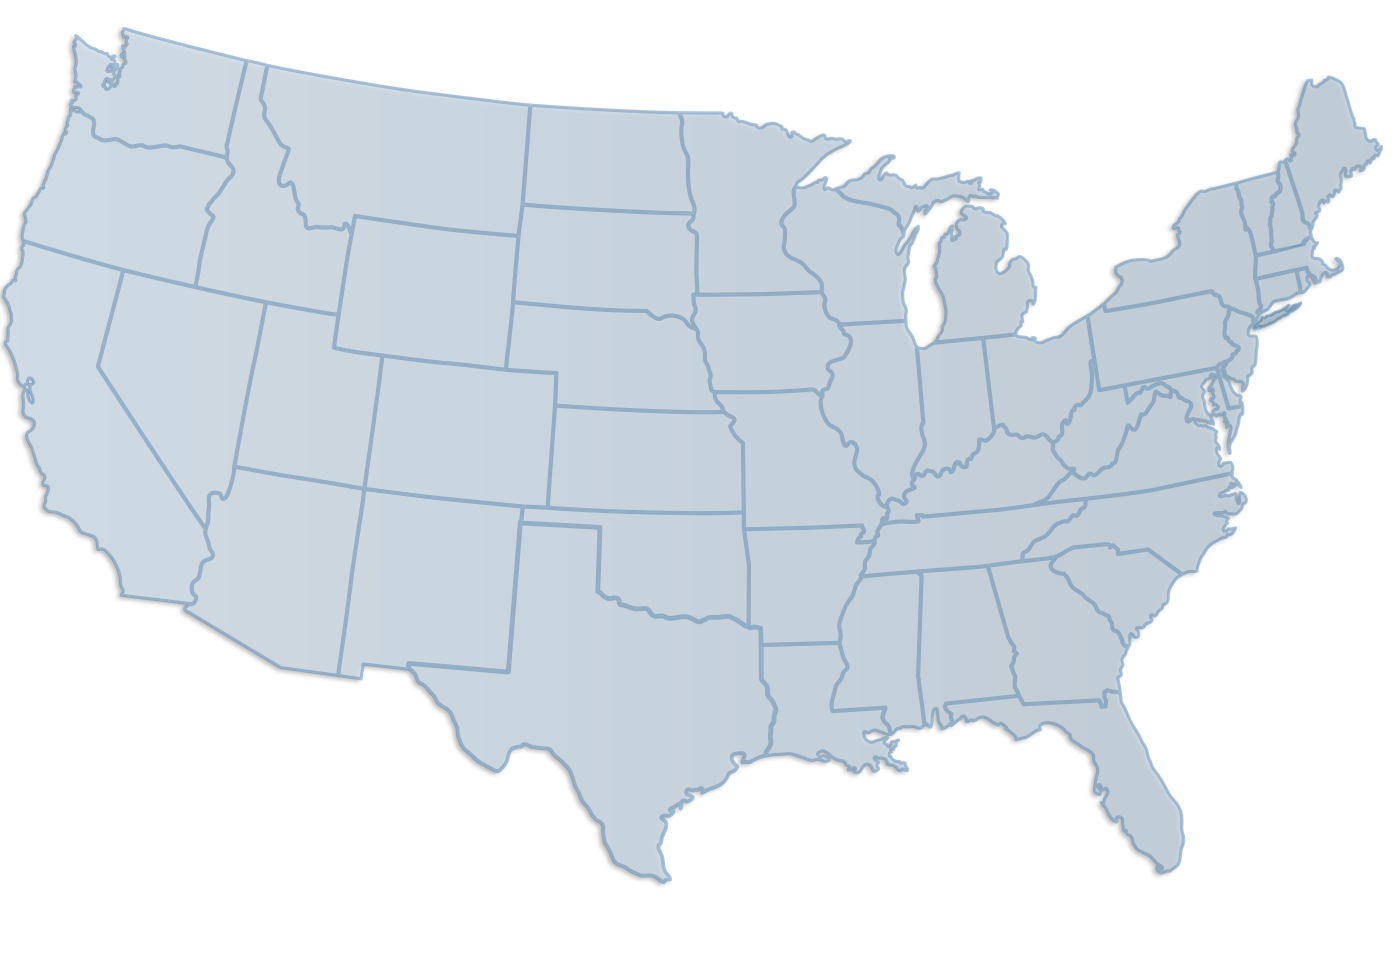 usa map fepng uff crazypng crazypng #36626